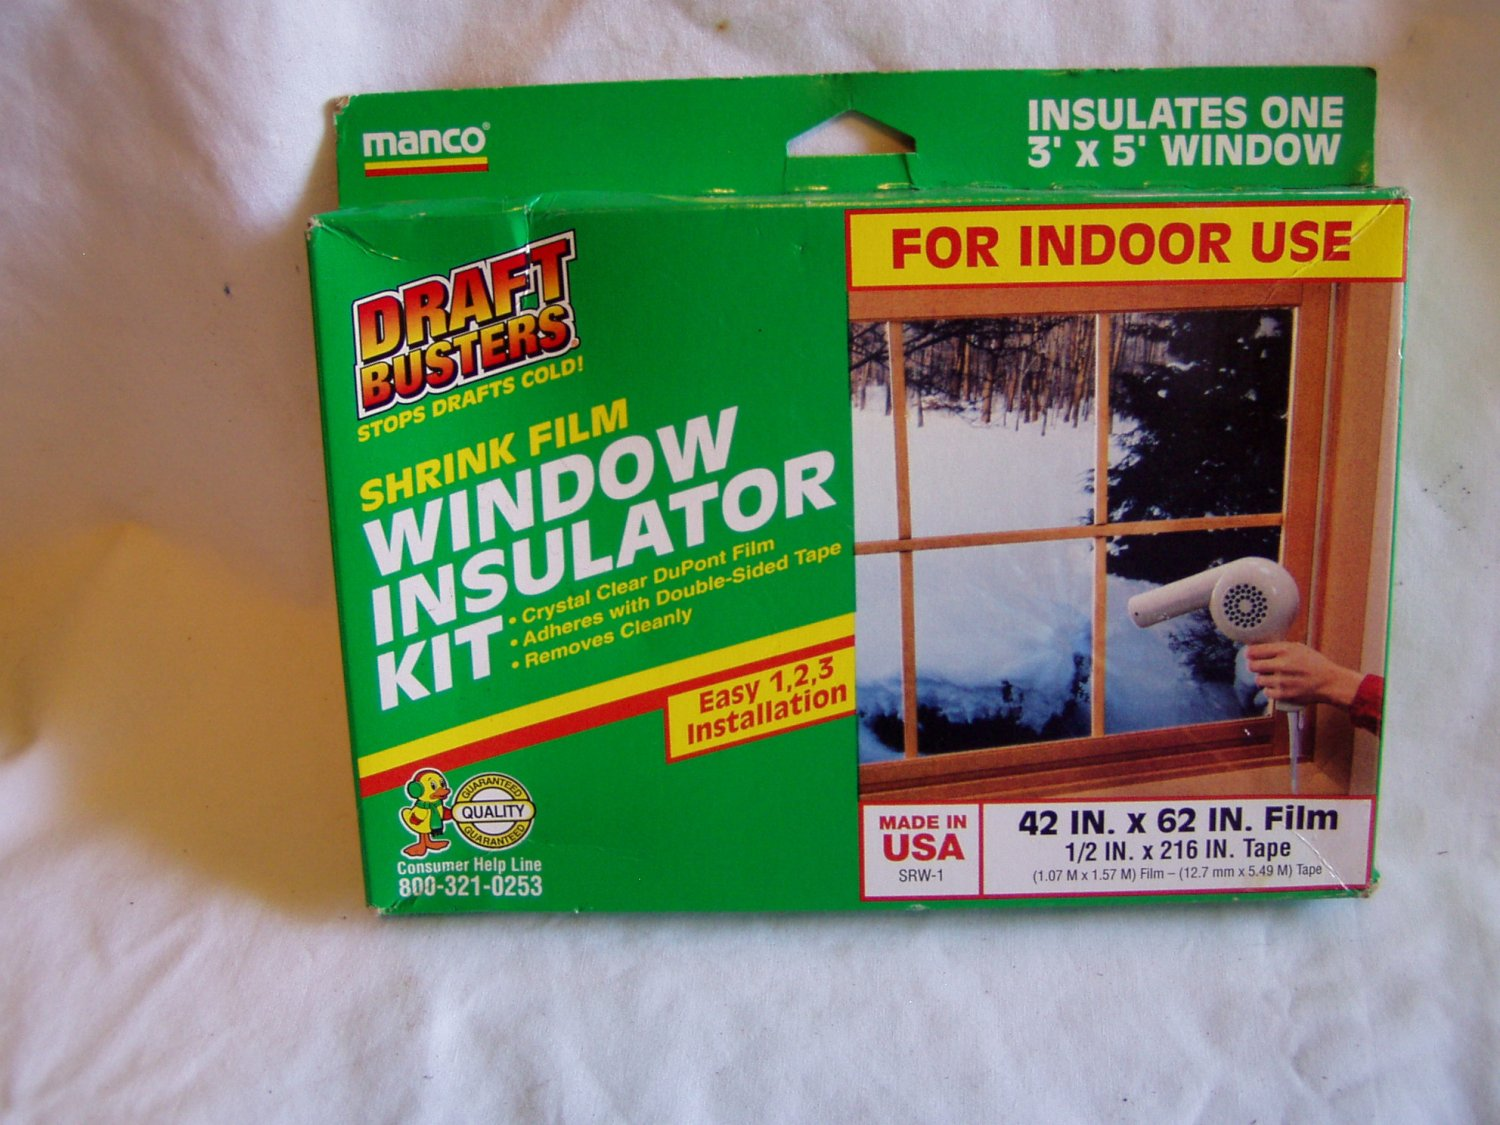 Manco shrink film window insulator kit 42 in x 62 in for Window insulation kit